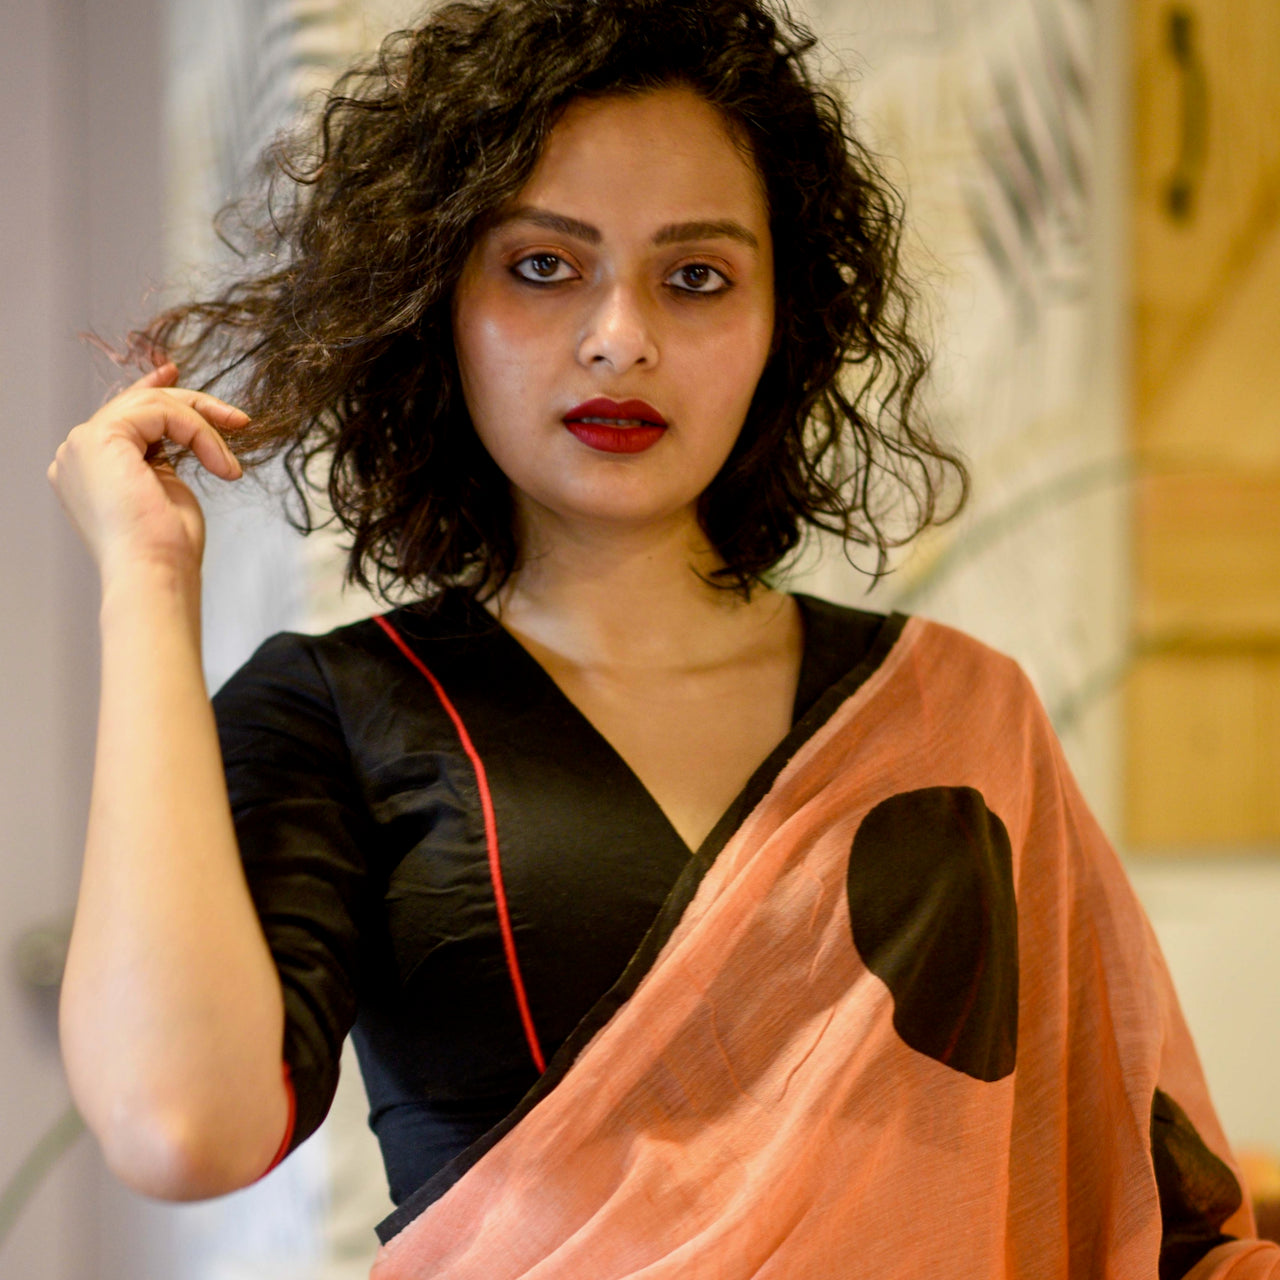 Sujata models a black blouse along with an orange saree with large black dots.